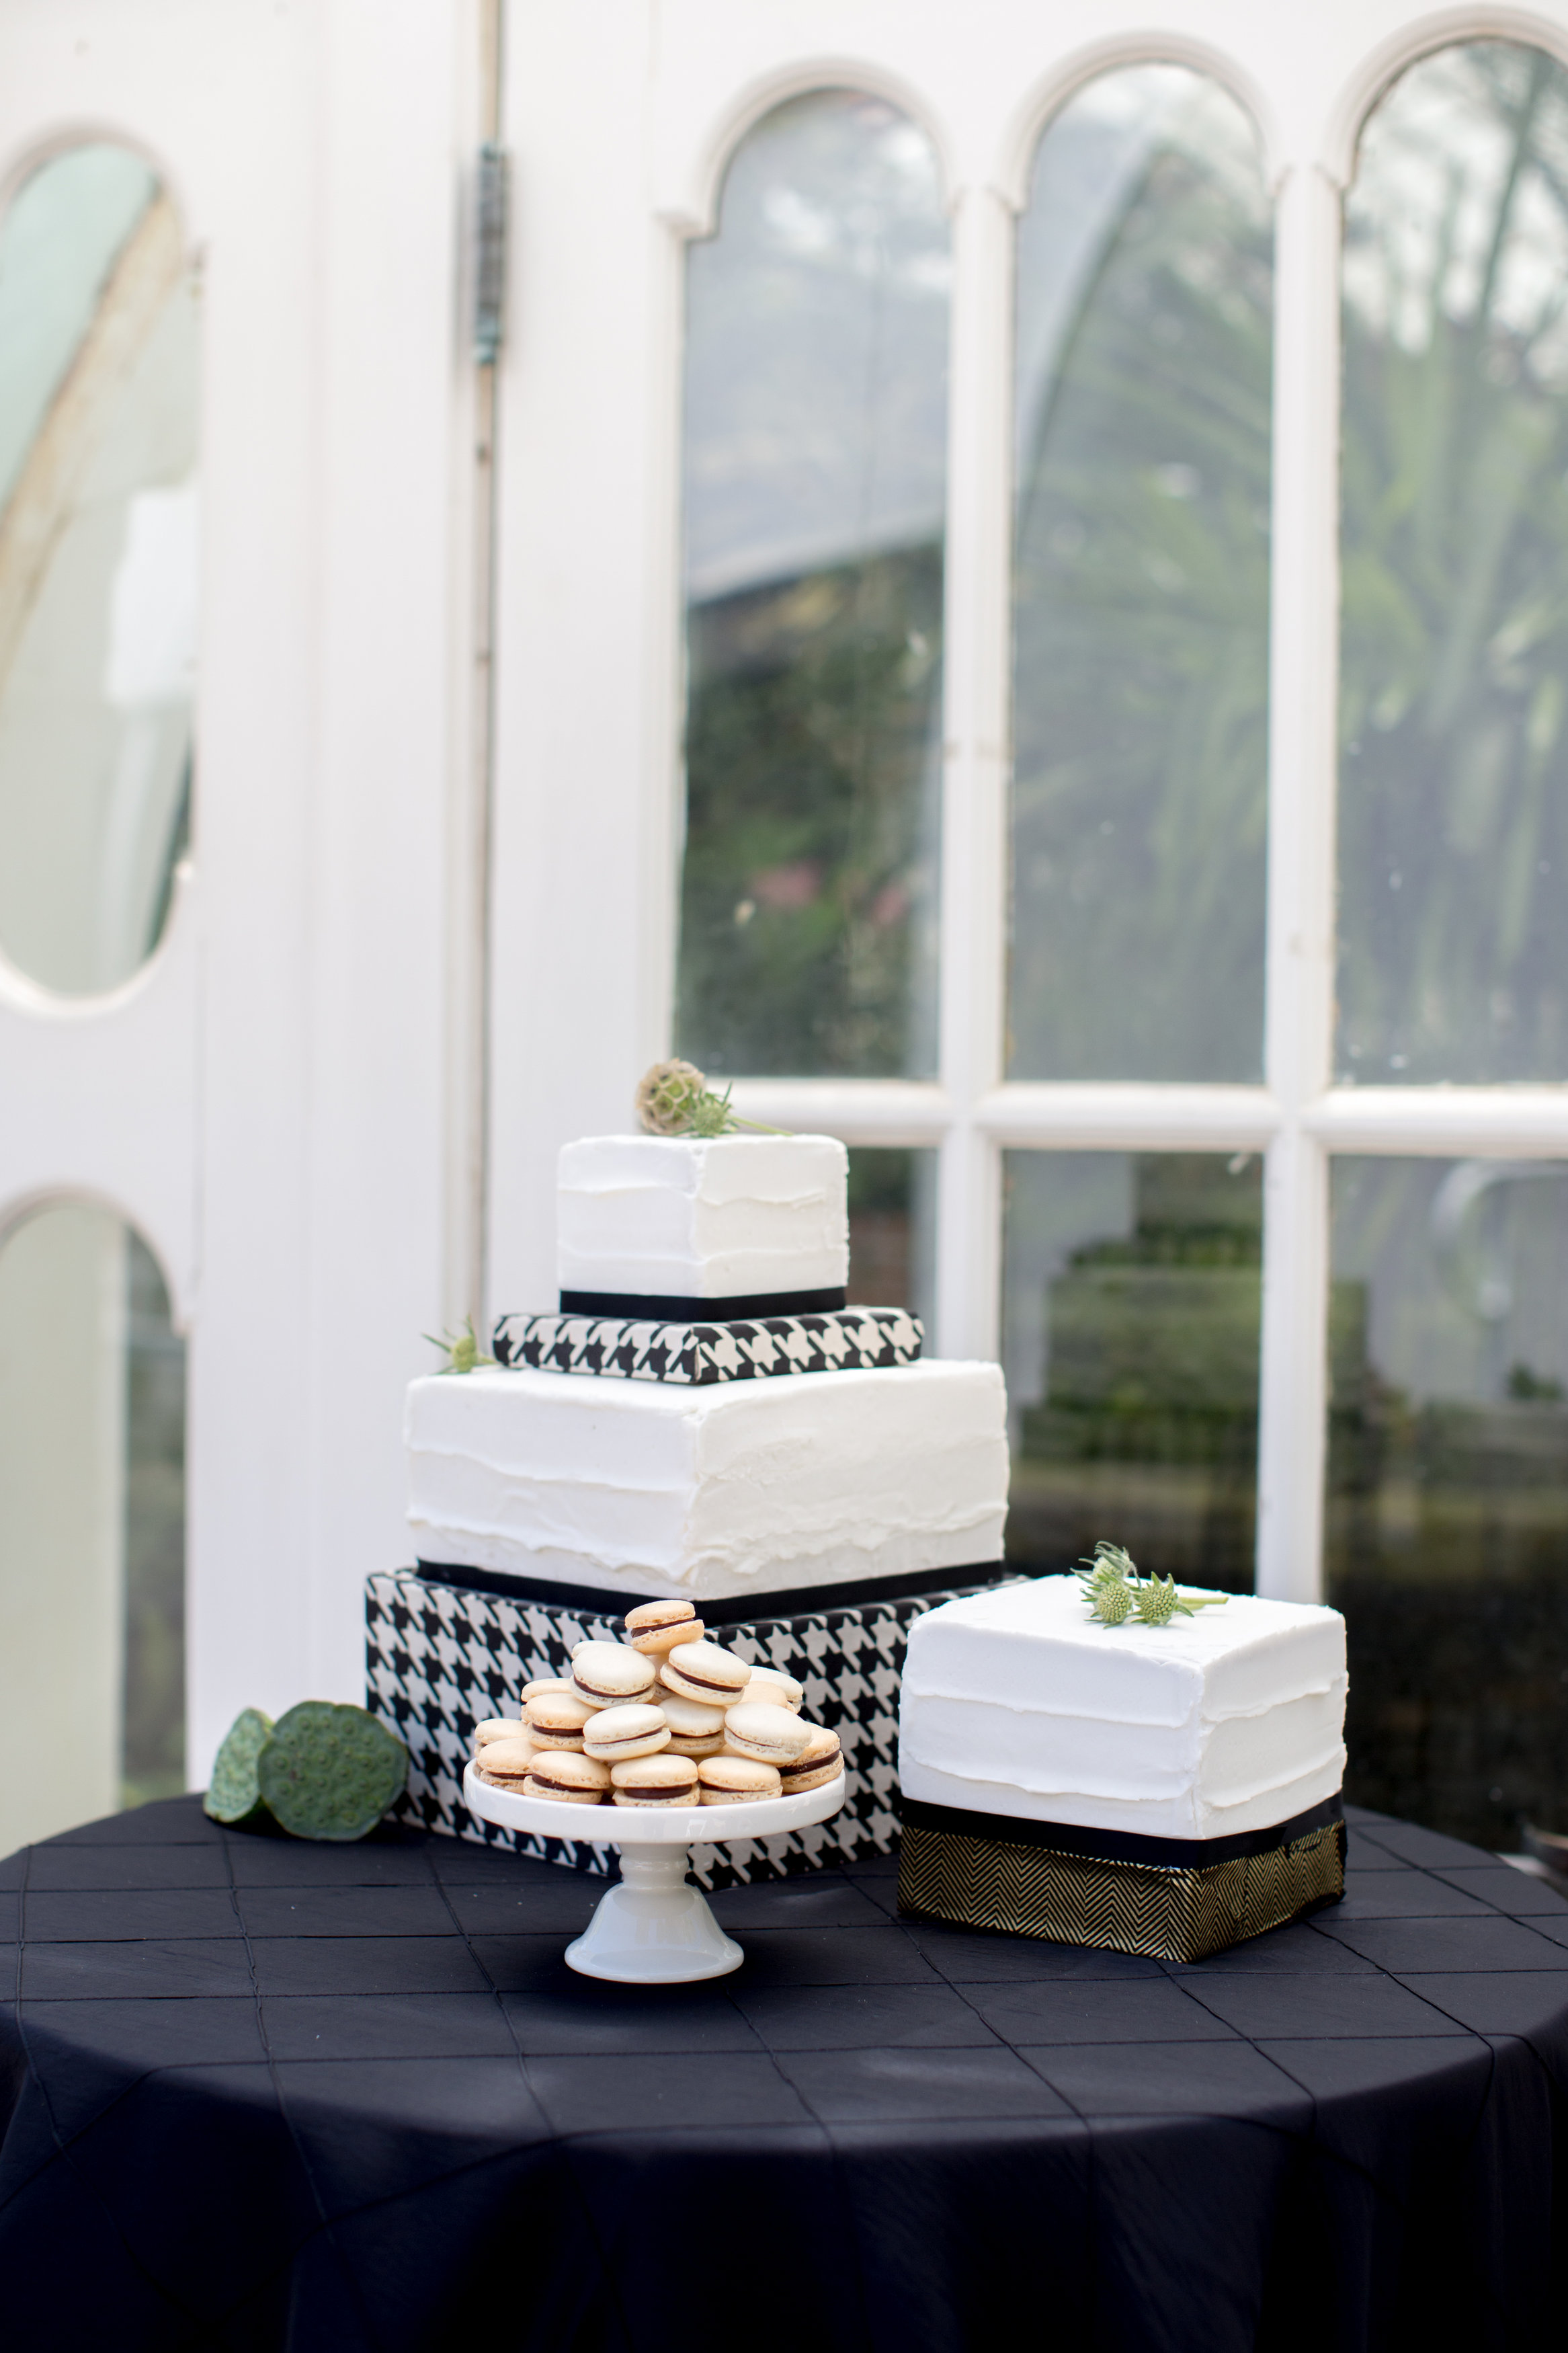 JennaBethPhotography-Conservatory-locally-grown-weddings-cake-flowers-black-white.jpg